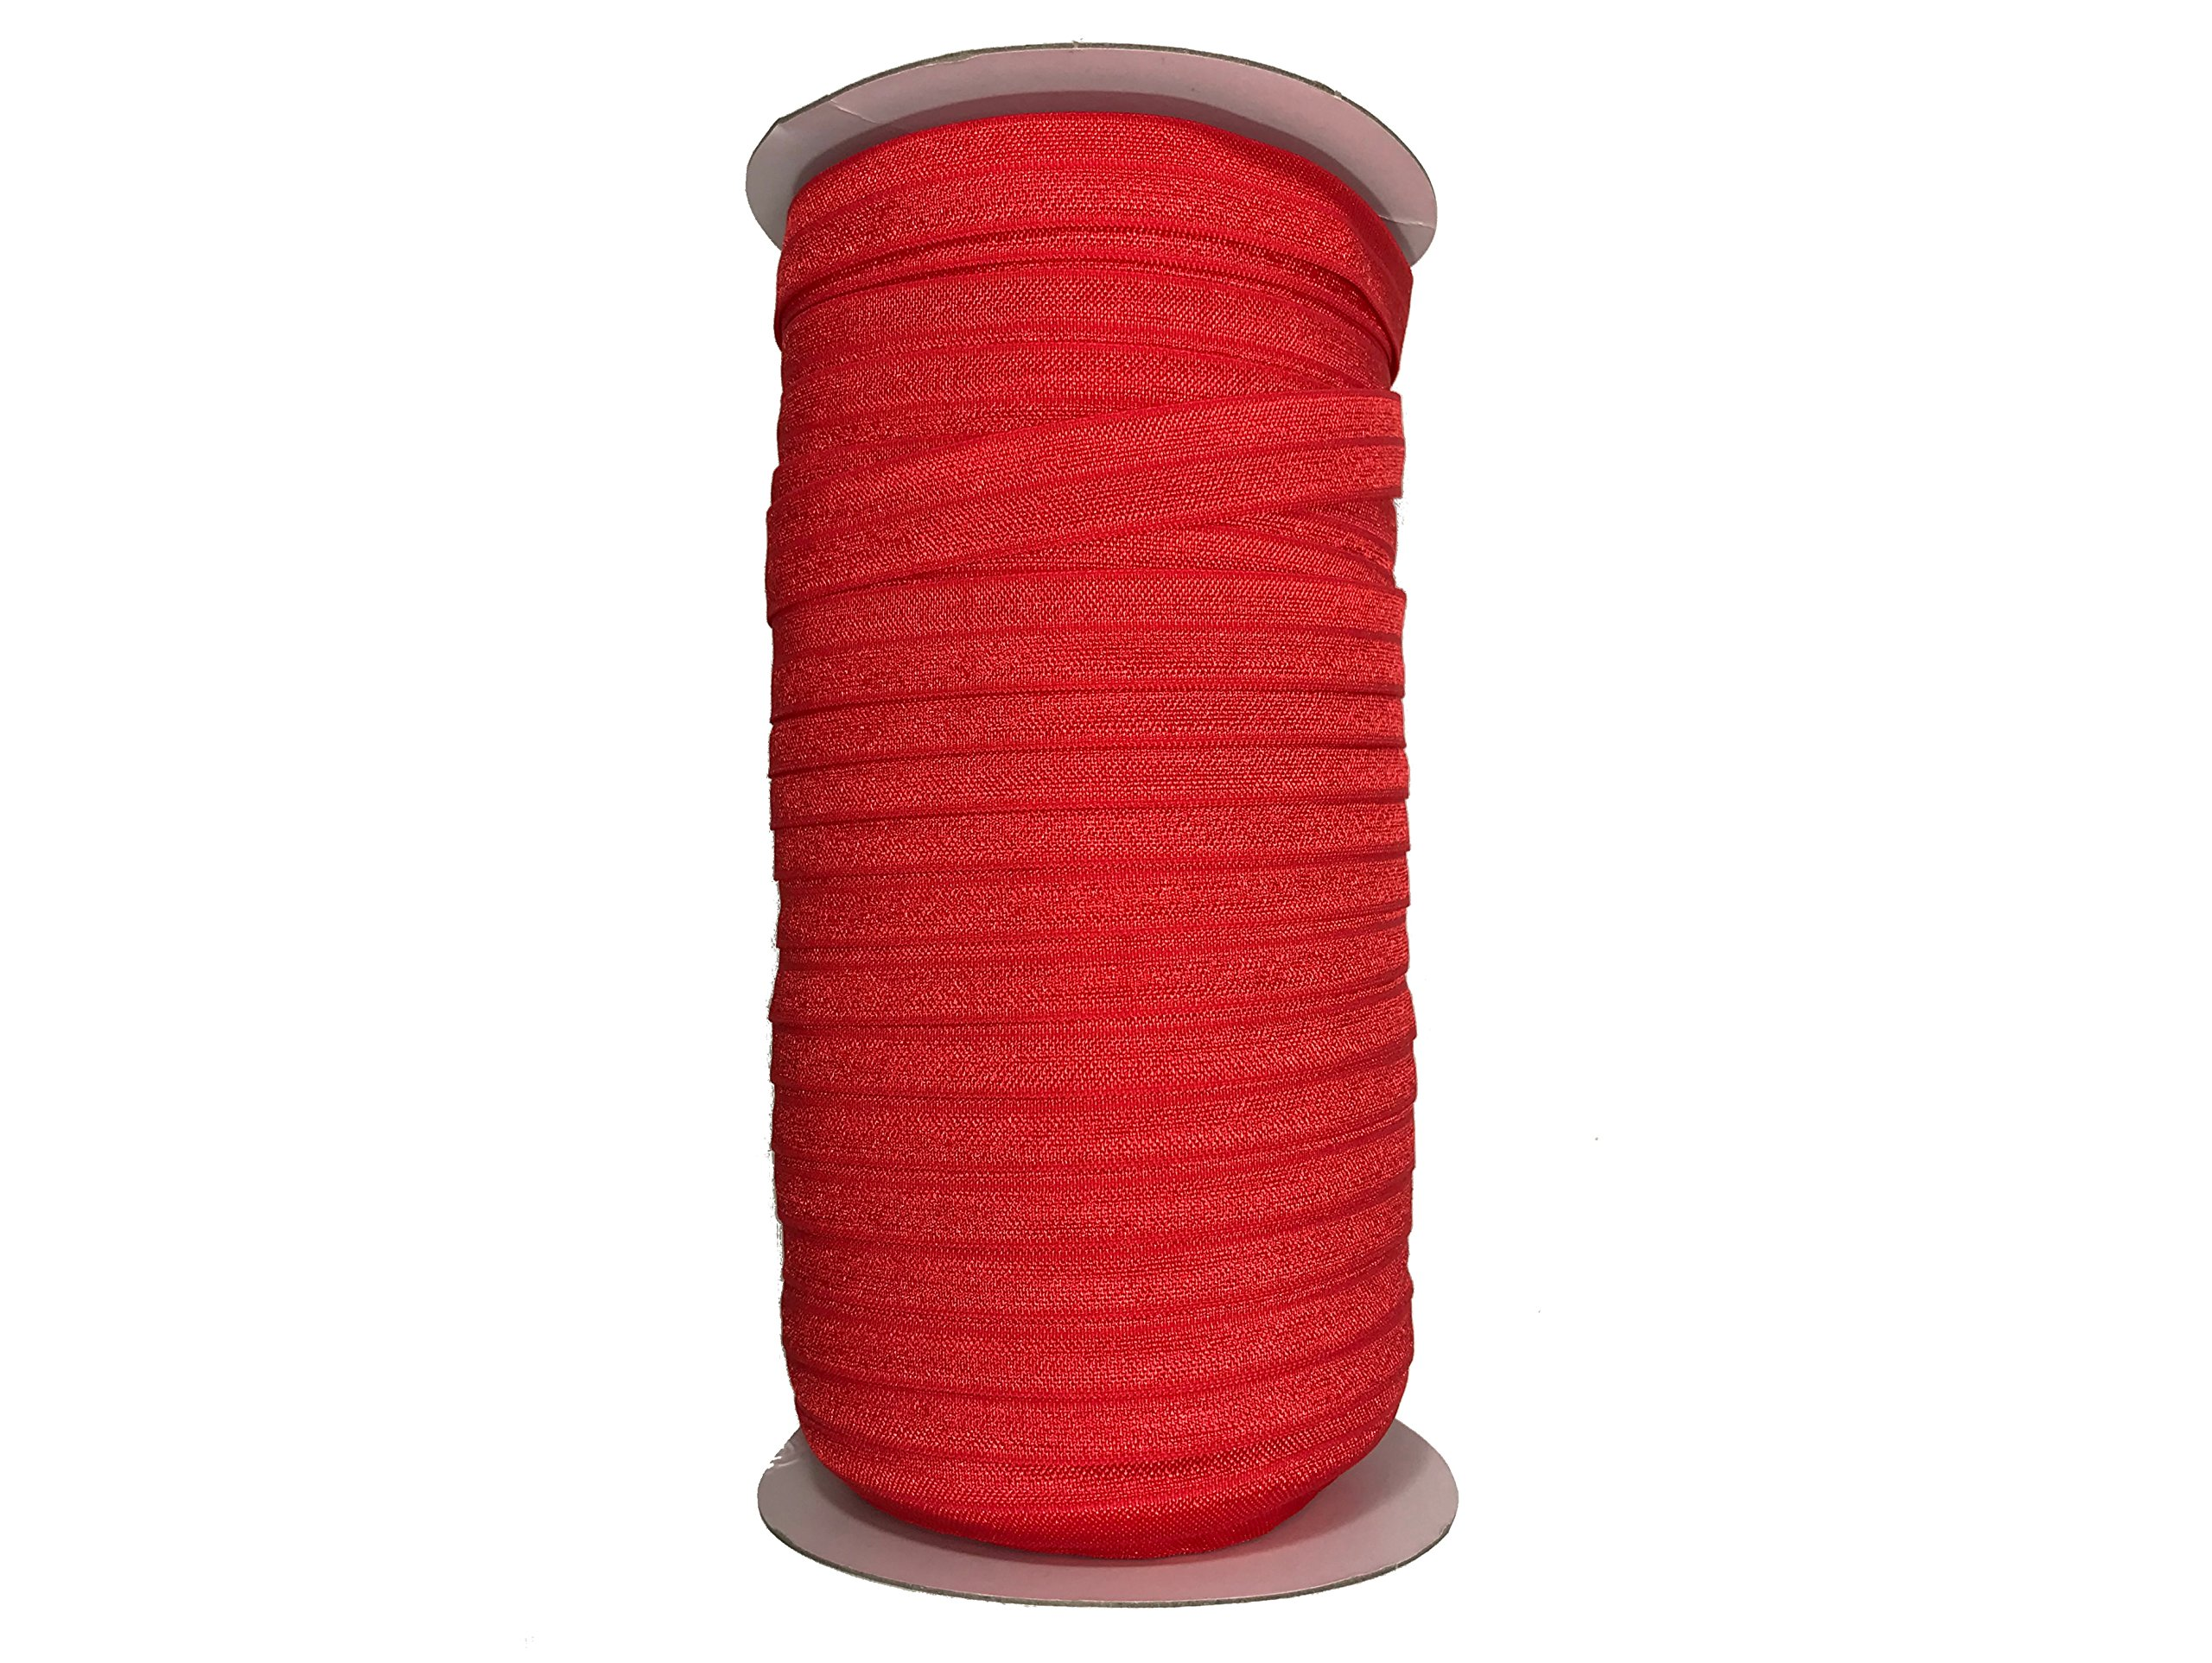 Fold Over Elastic Roll 5/8'' Foldover Elastic FOE Stretch Elastic for Headbands or Hair Ties - 100 Yards (Red) by Bowtique Emilee